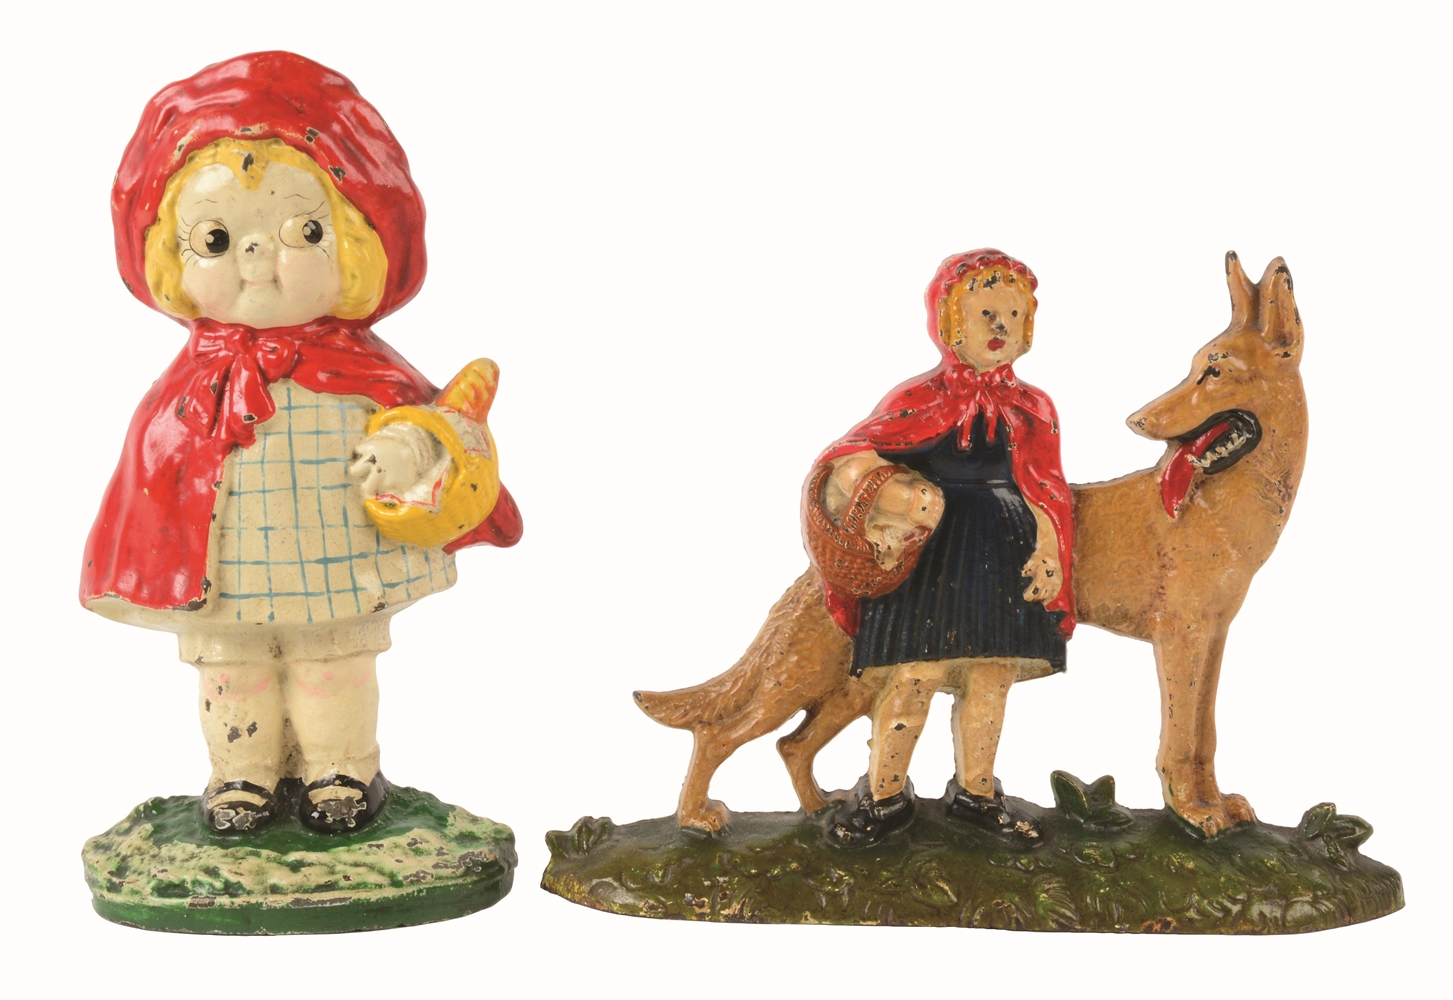 LOT OF 2: CAST-IRON LITTLE RED RIDING HOOD DOORSTOPS.